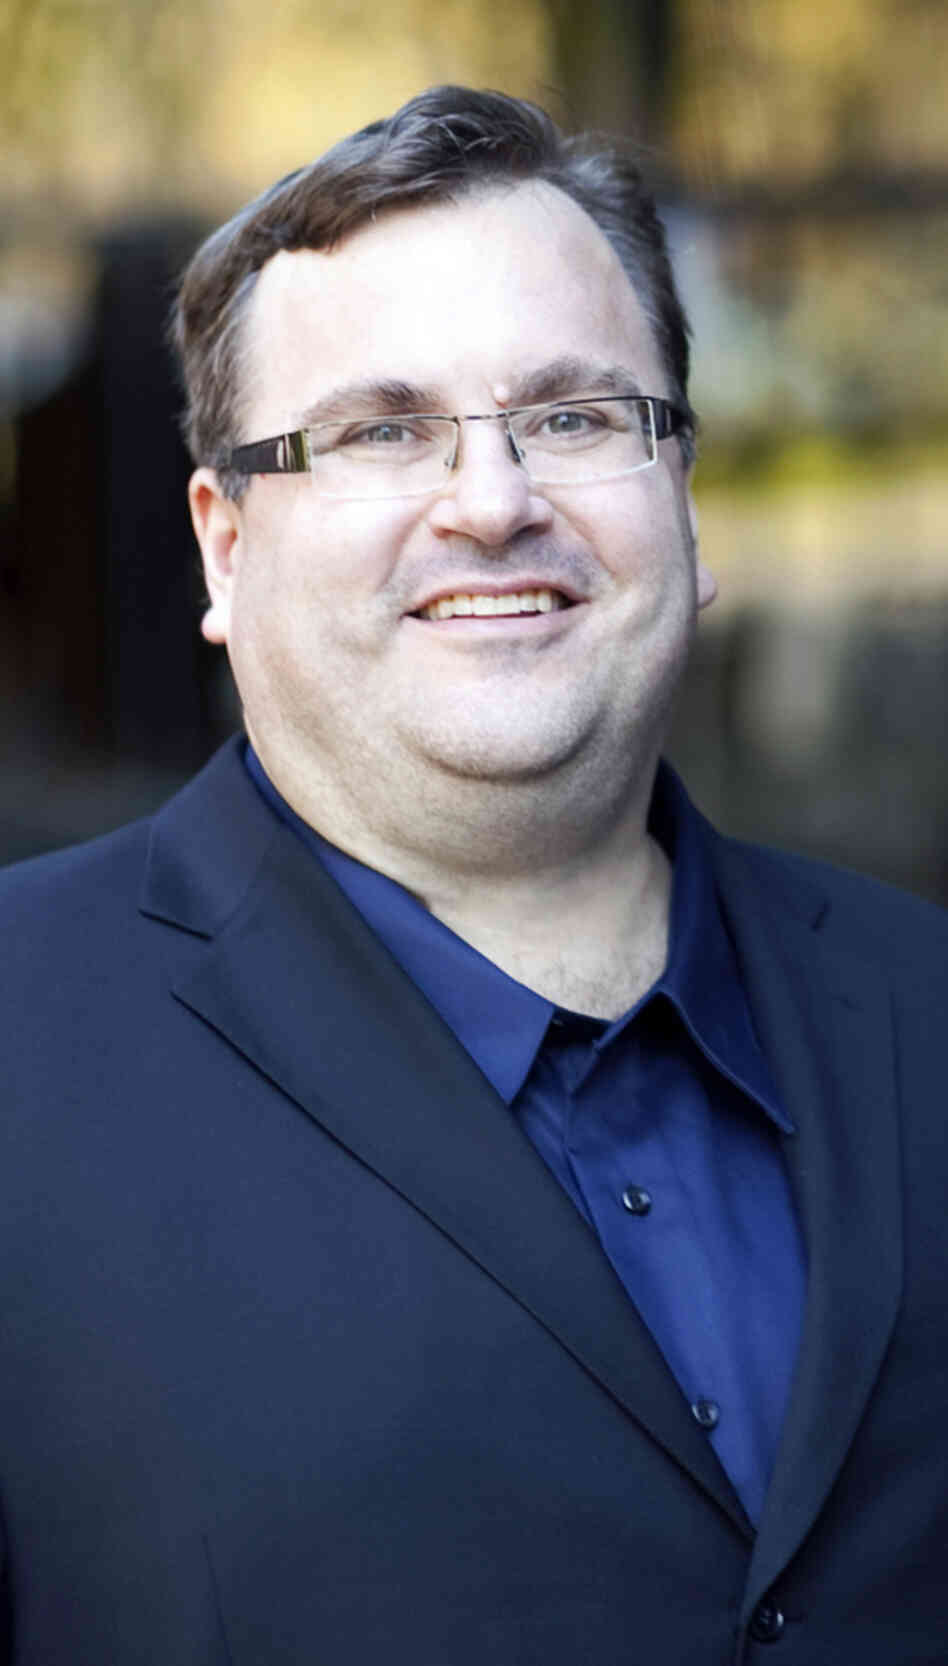 Reid Hoffman is the co-founder and executive chairman of the professional networking website LinkedIn. As a frequent angel investor, he has helped turn many Silicon Valley startups into success stories.